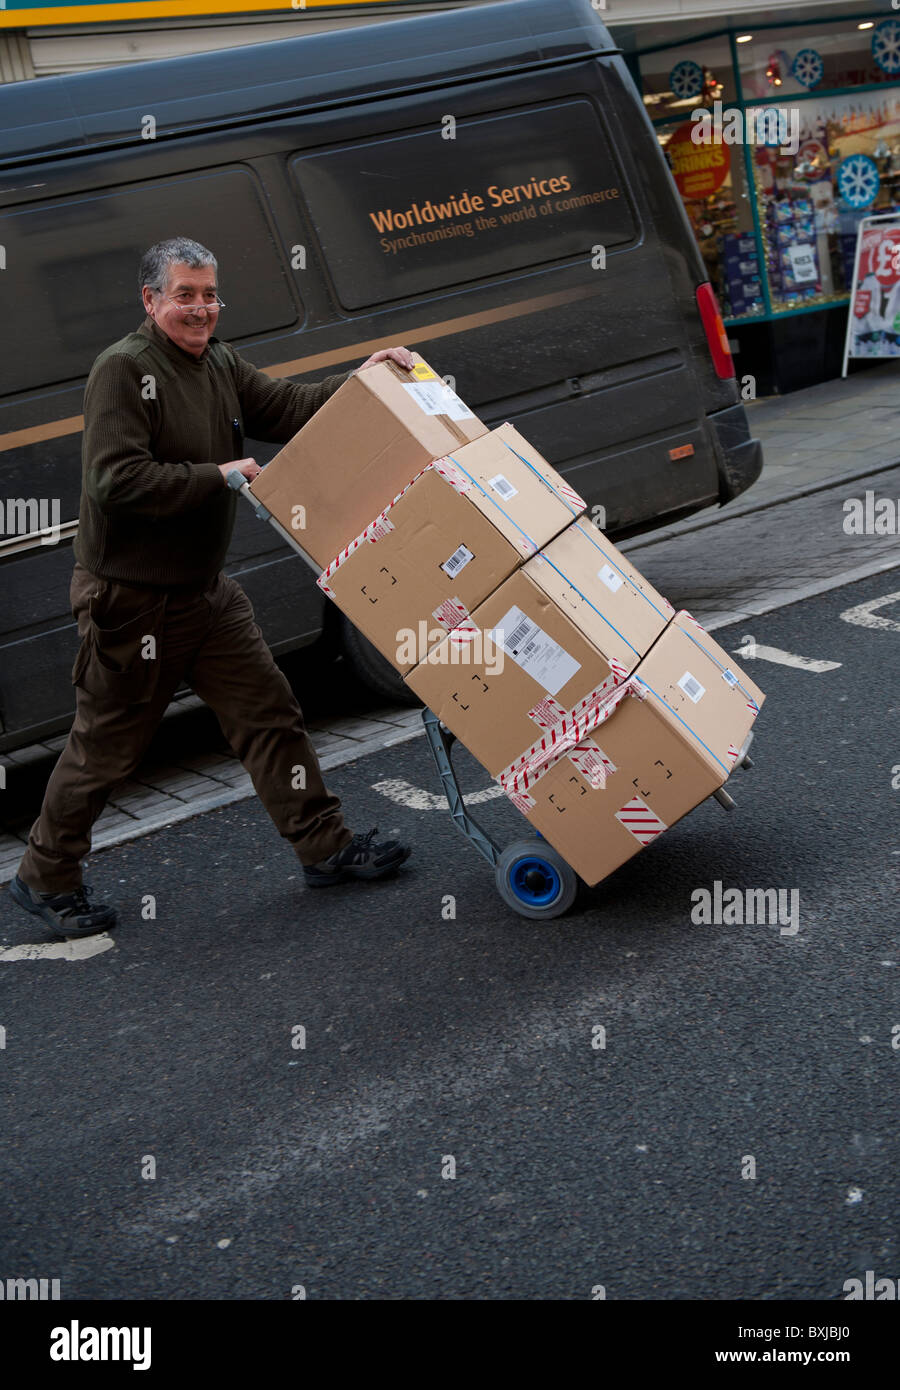 A UPS United Parcels Service courier service man delivering a stack of parcels to a customer, UK - Stock Image